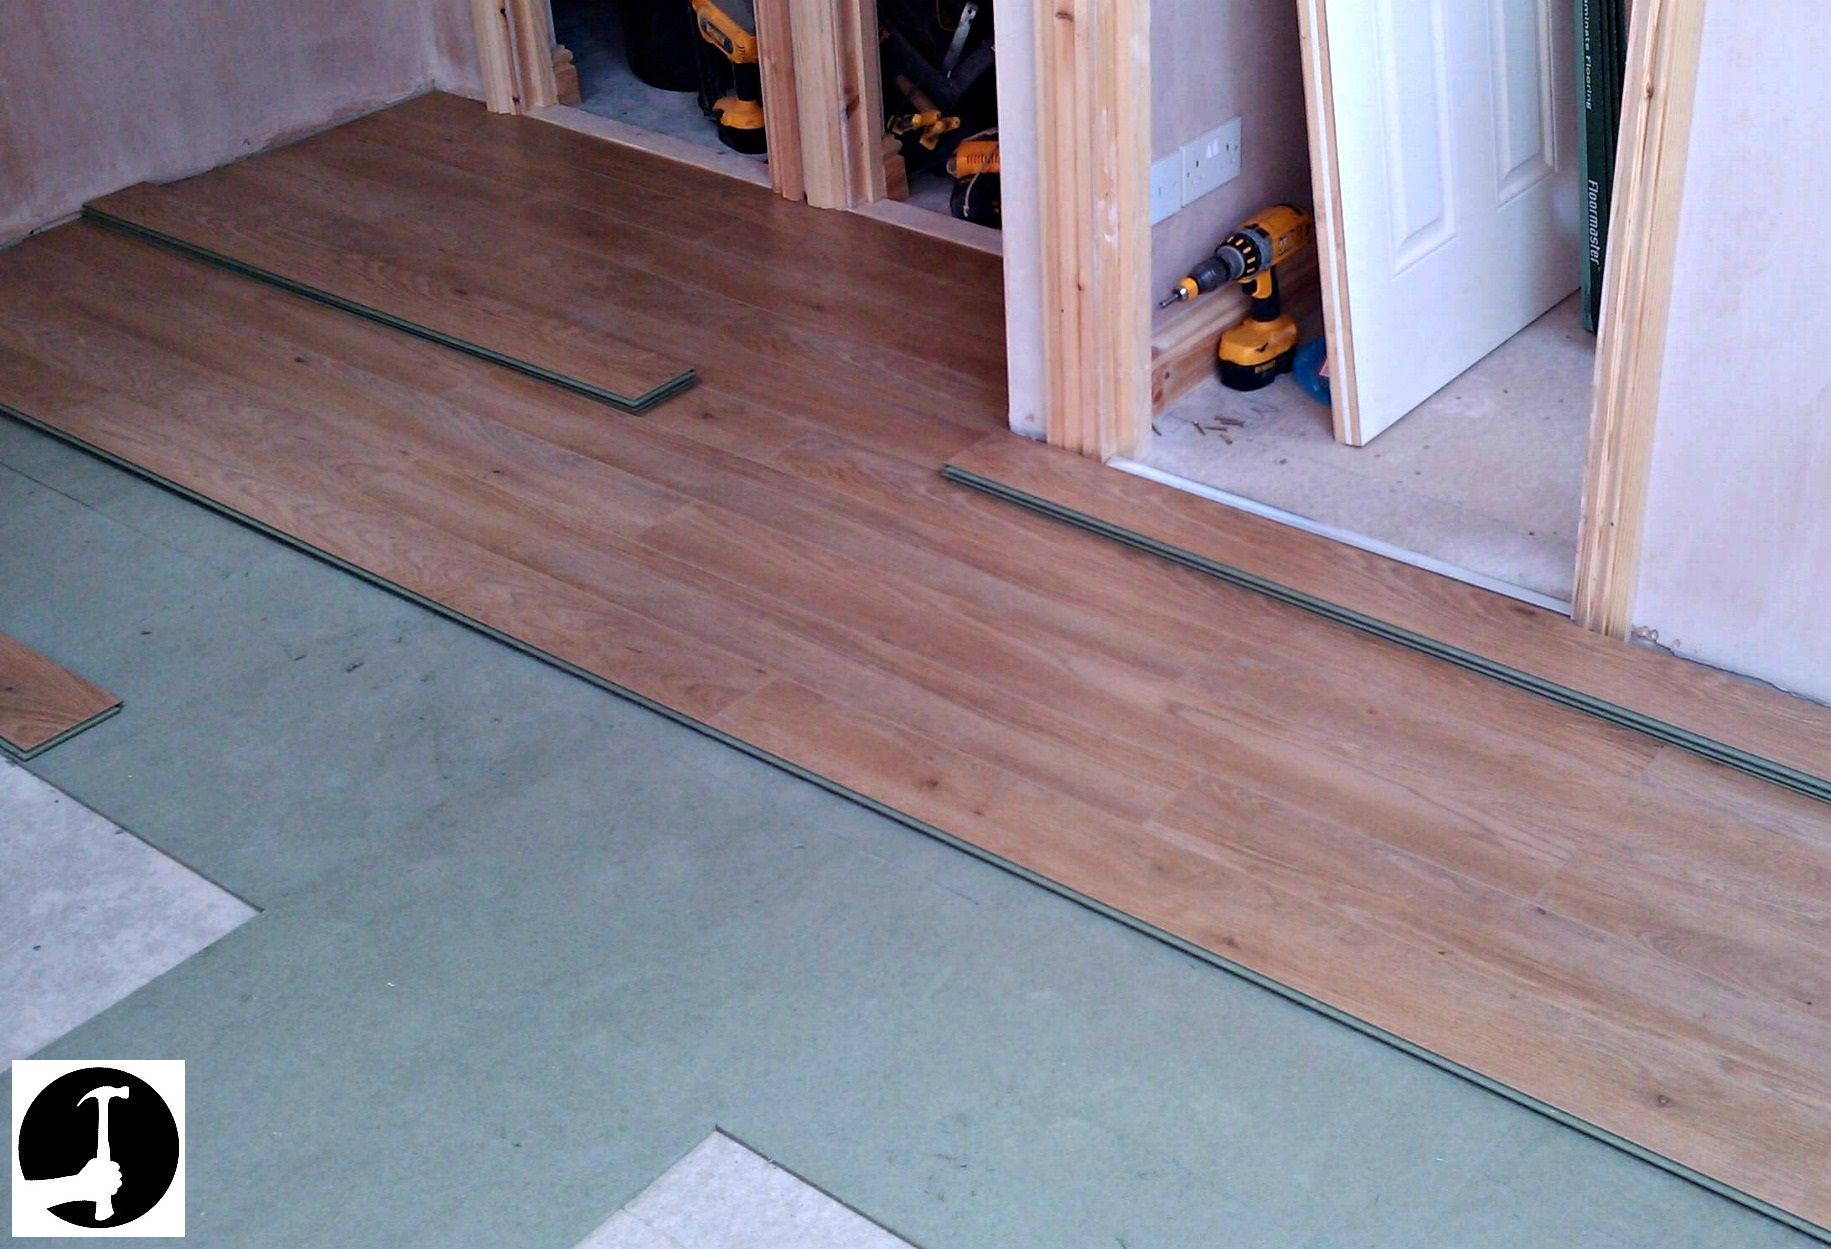 Laminate Flooring Installation Costs. Feels free to follow